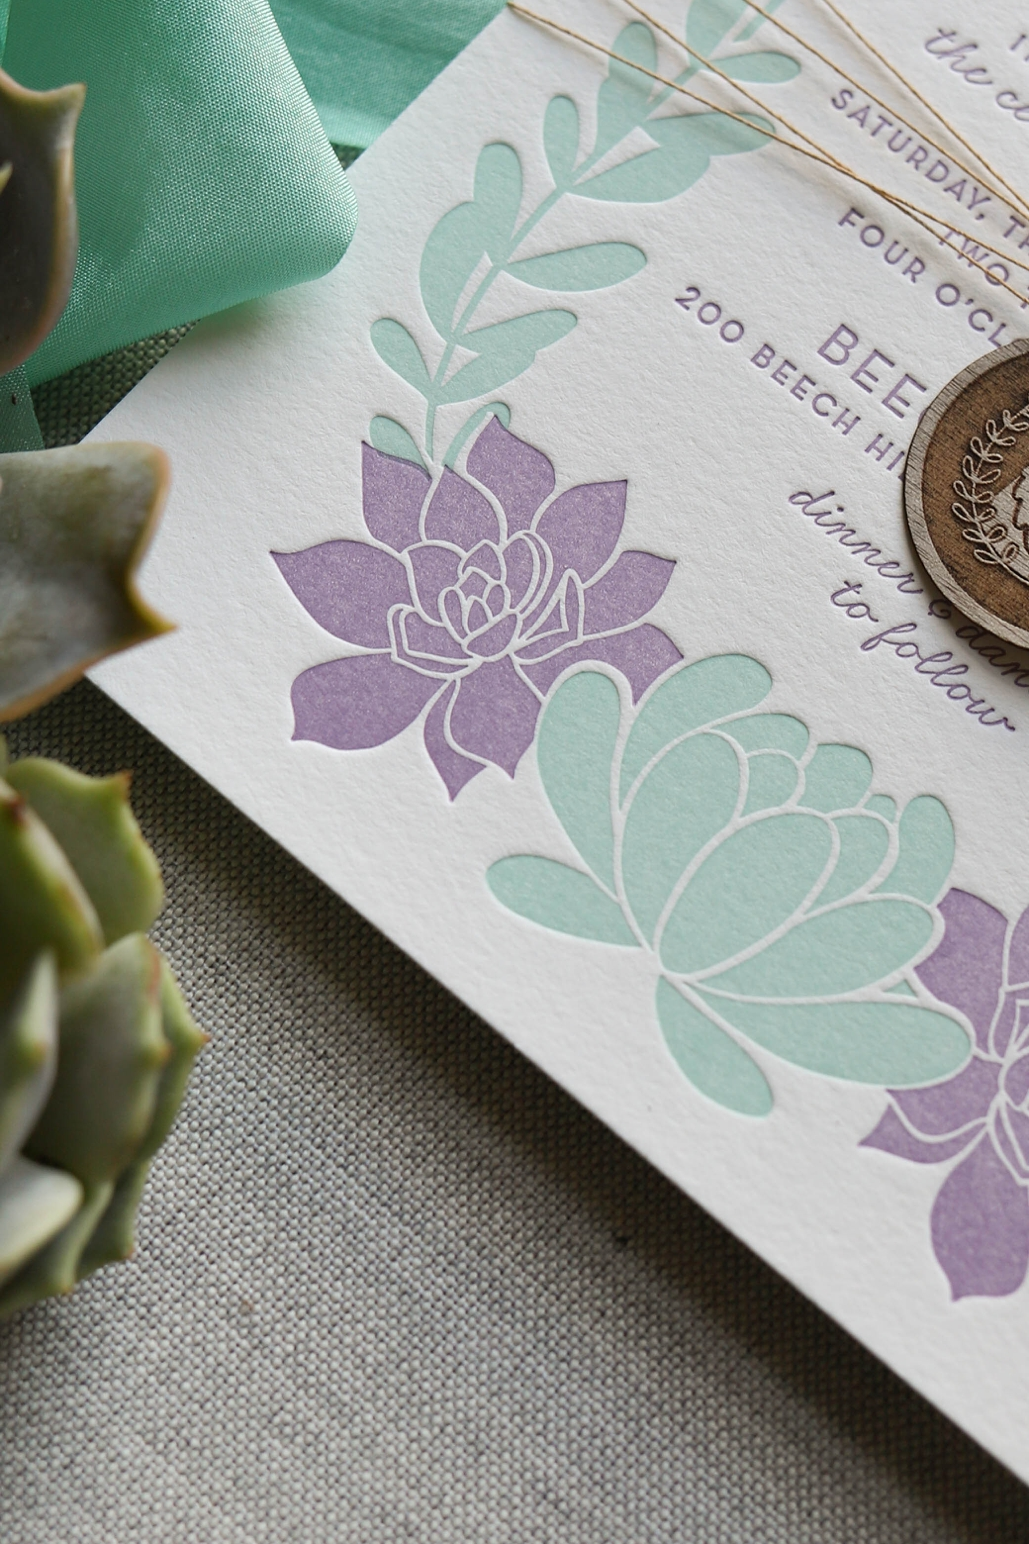 purple and green succulents illustrated for wedding invitations, custom wedding invitation designer with letterpress printing